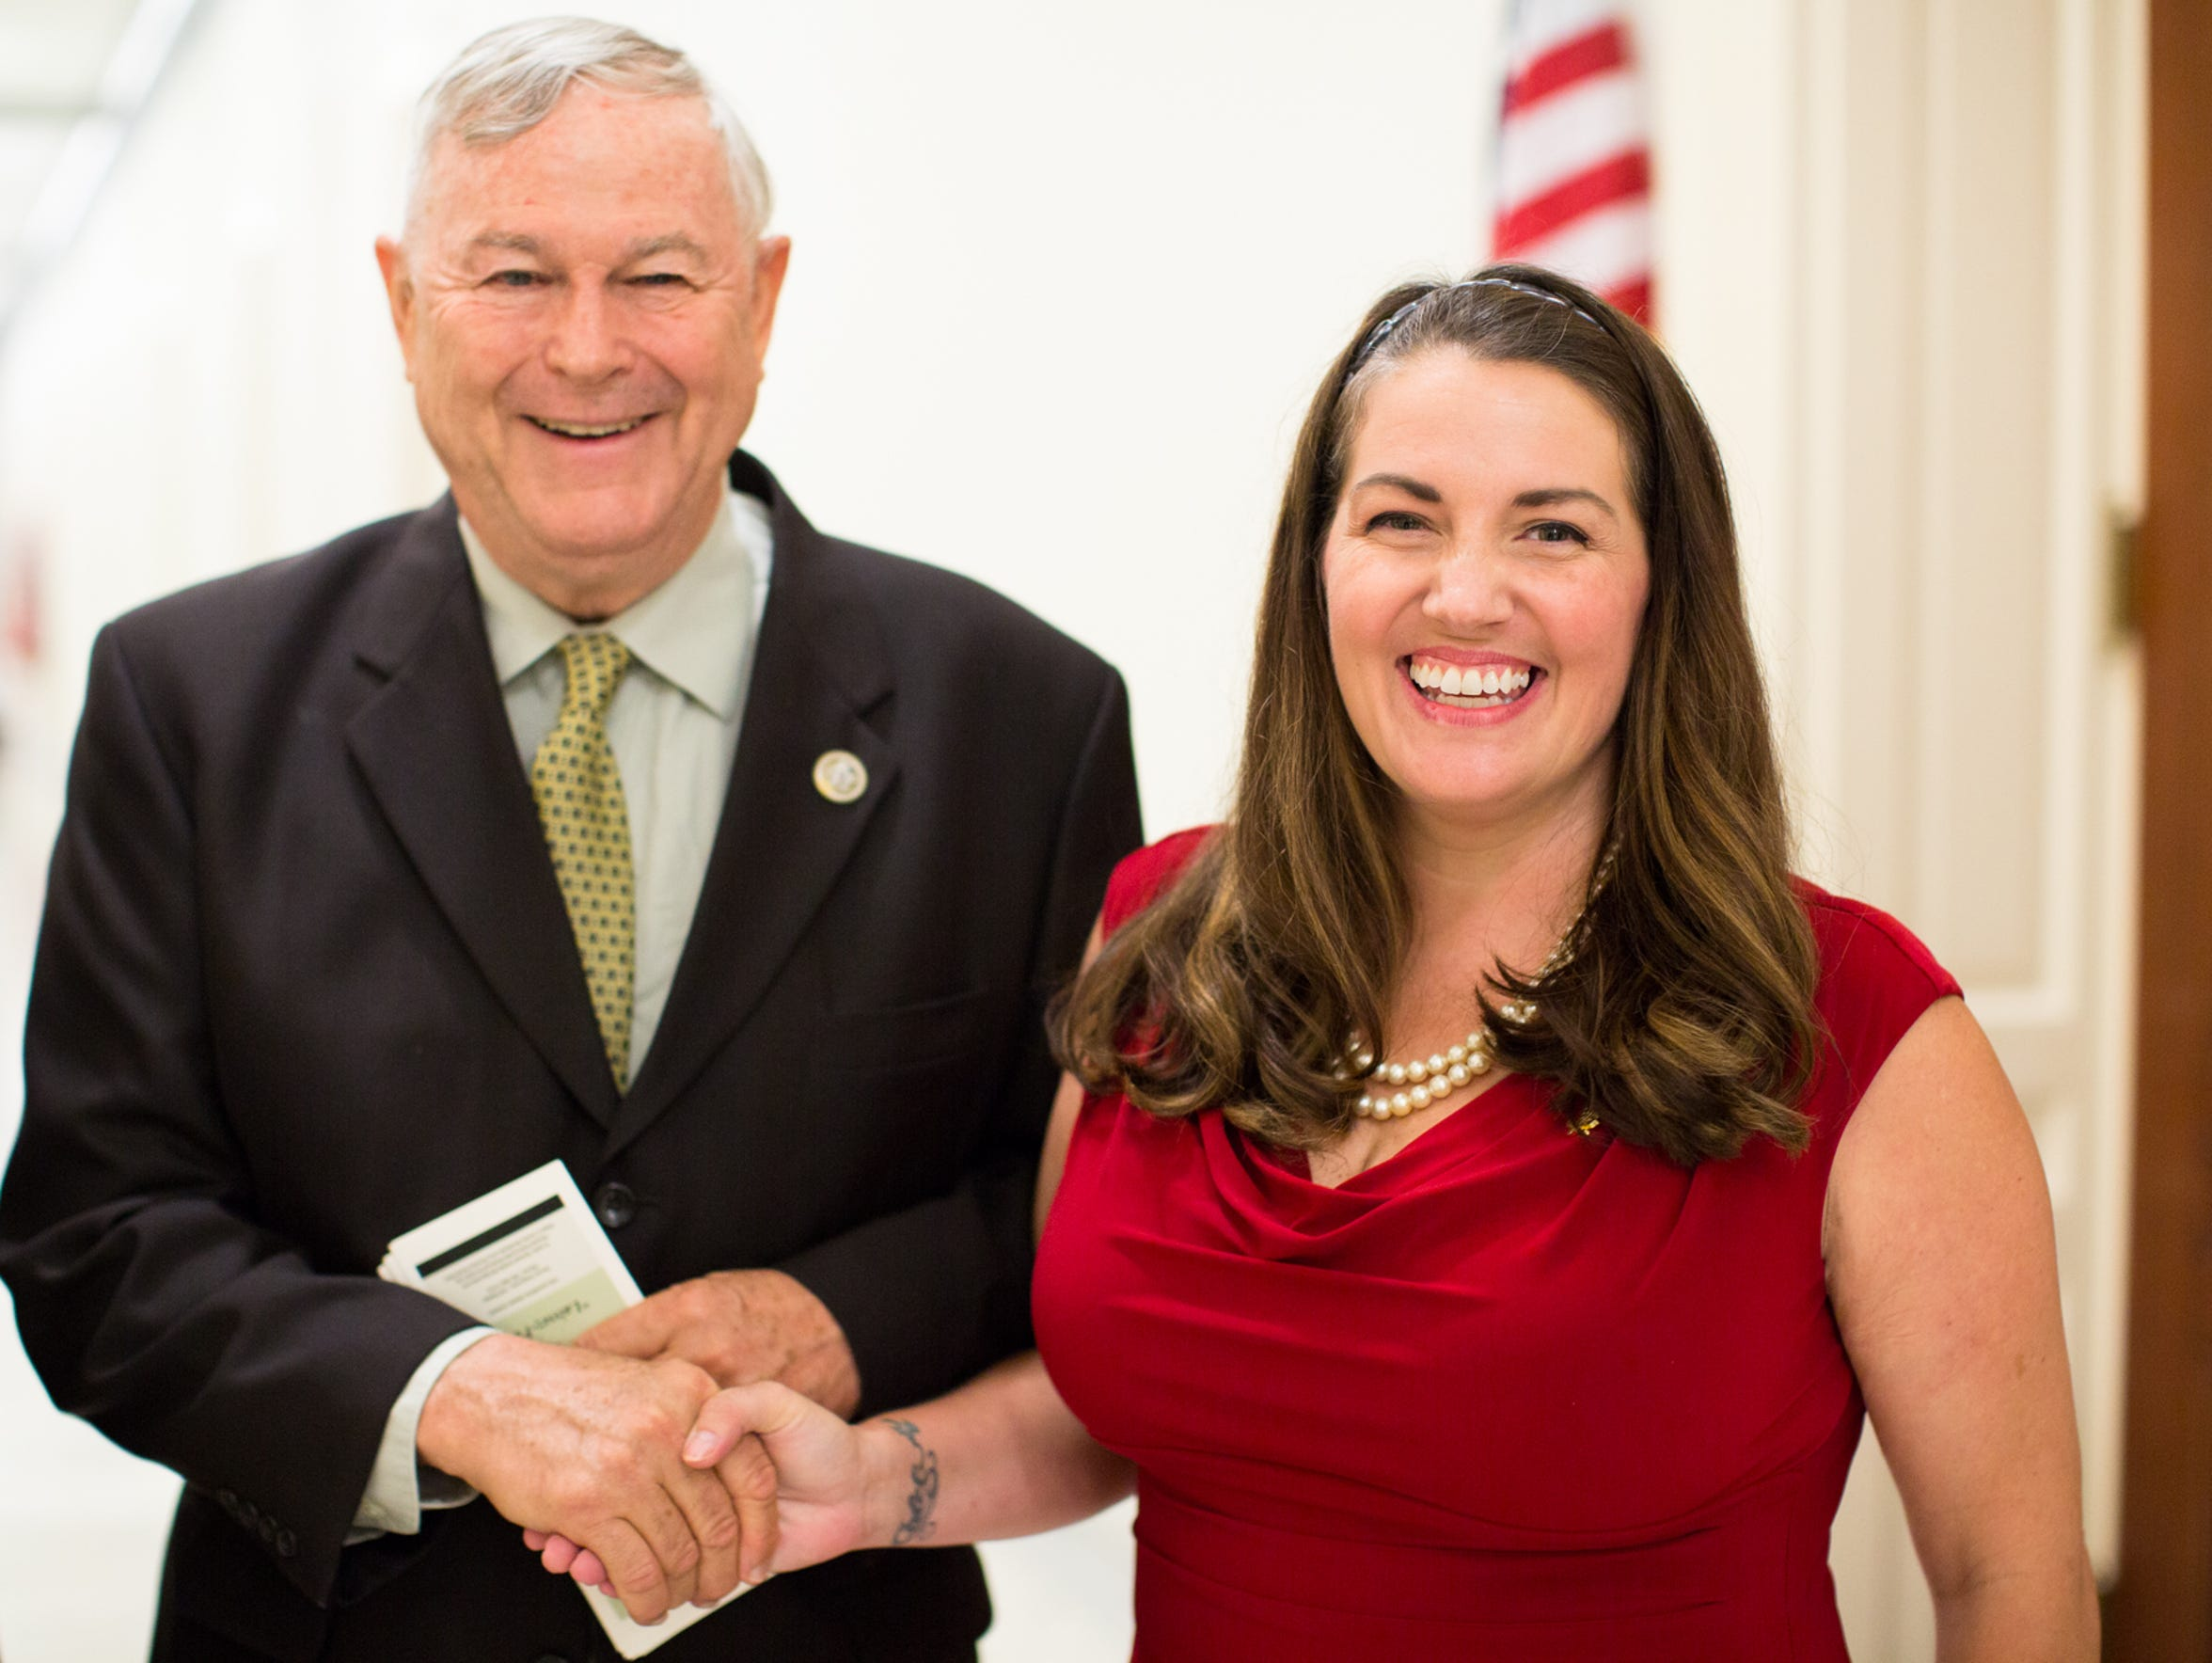 Rep. Dana Rohrabacher and Nikki Narduzzi at Virginia